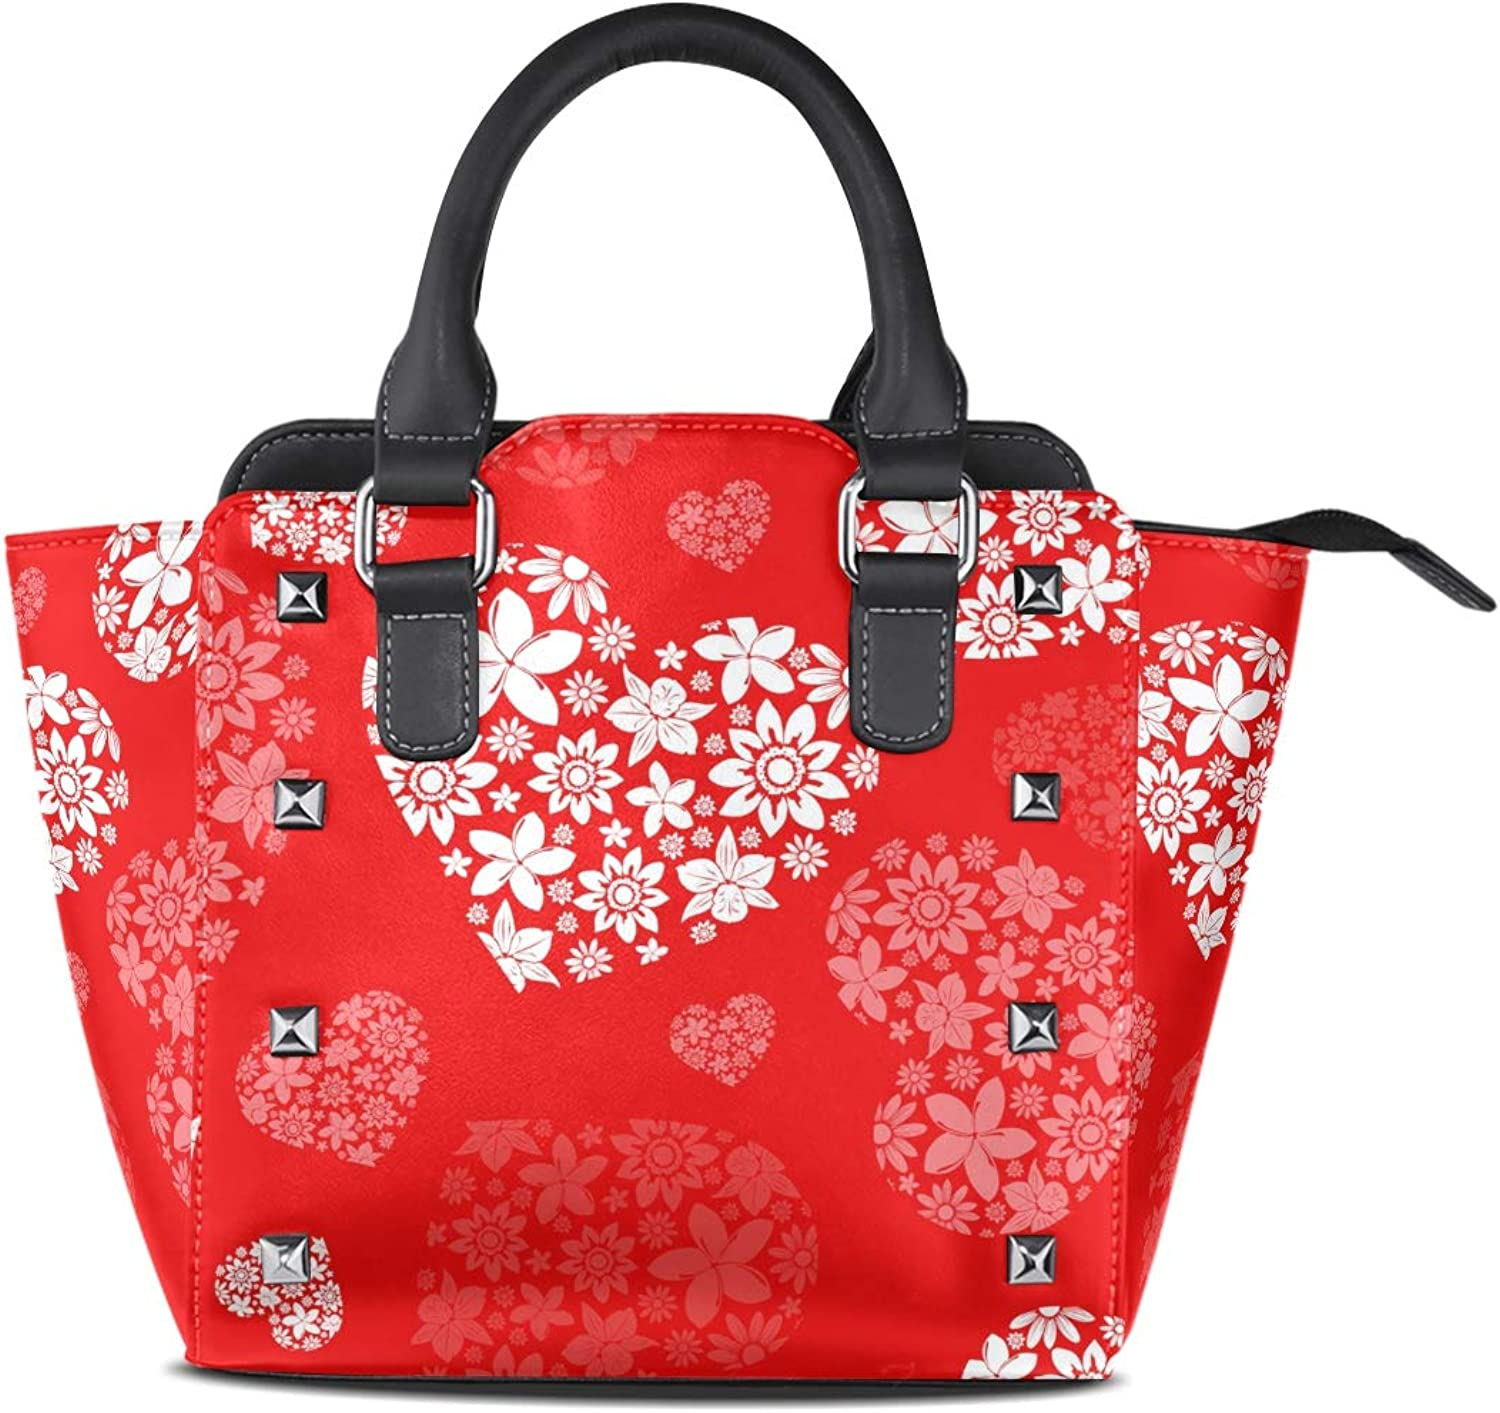 My Little Nest Women's Top Handle Satchel Handbag Red White Floral Hearts Ladies PU Leather Shoulder Bag Crossbody Bag